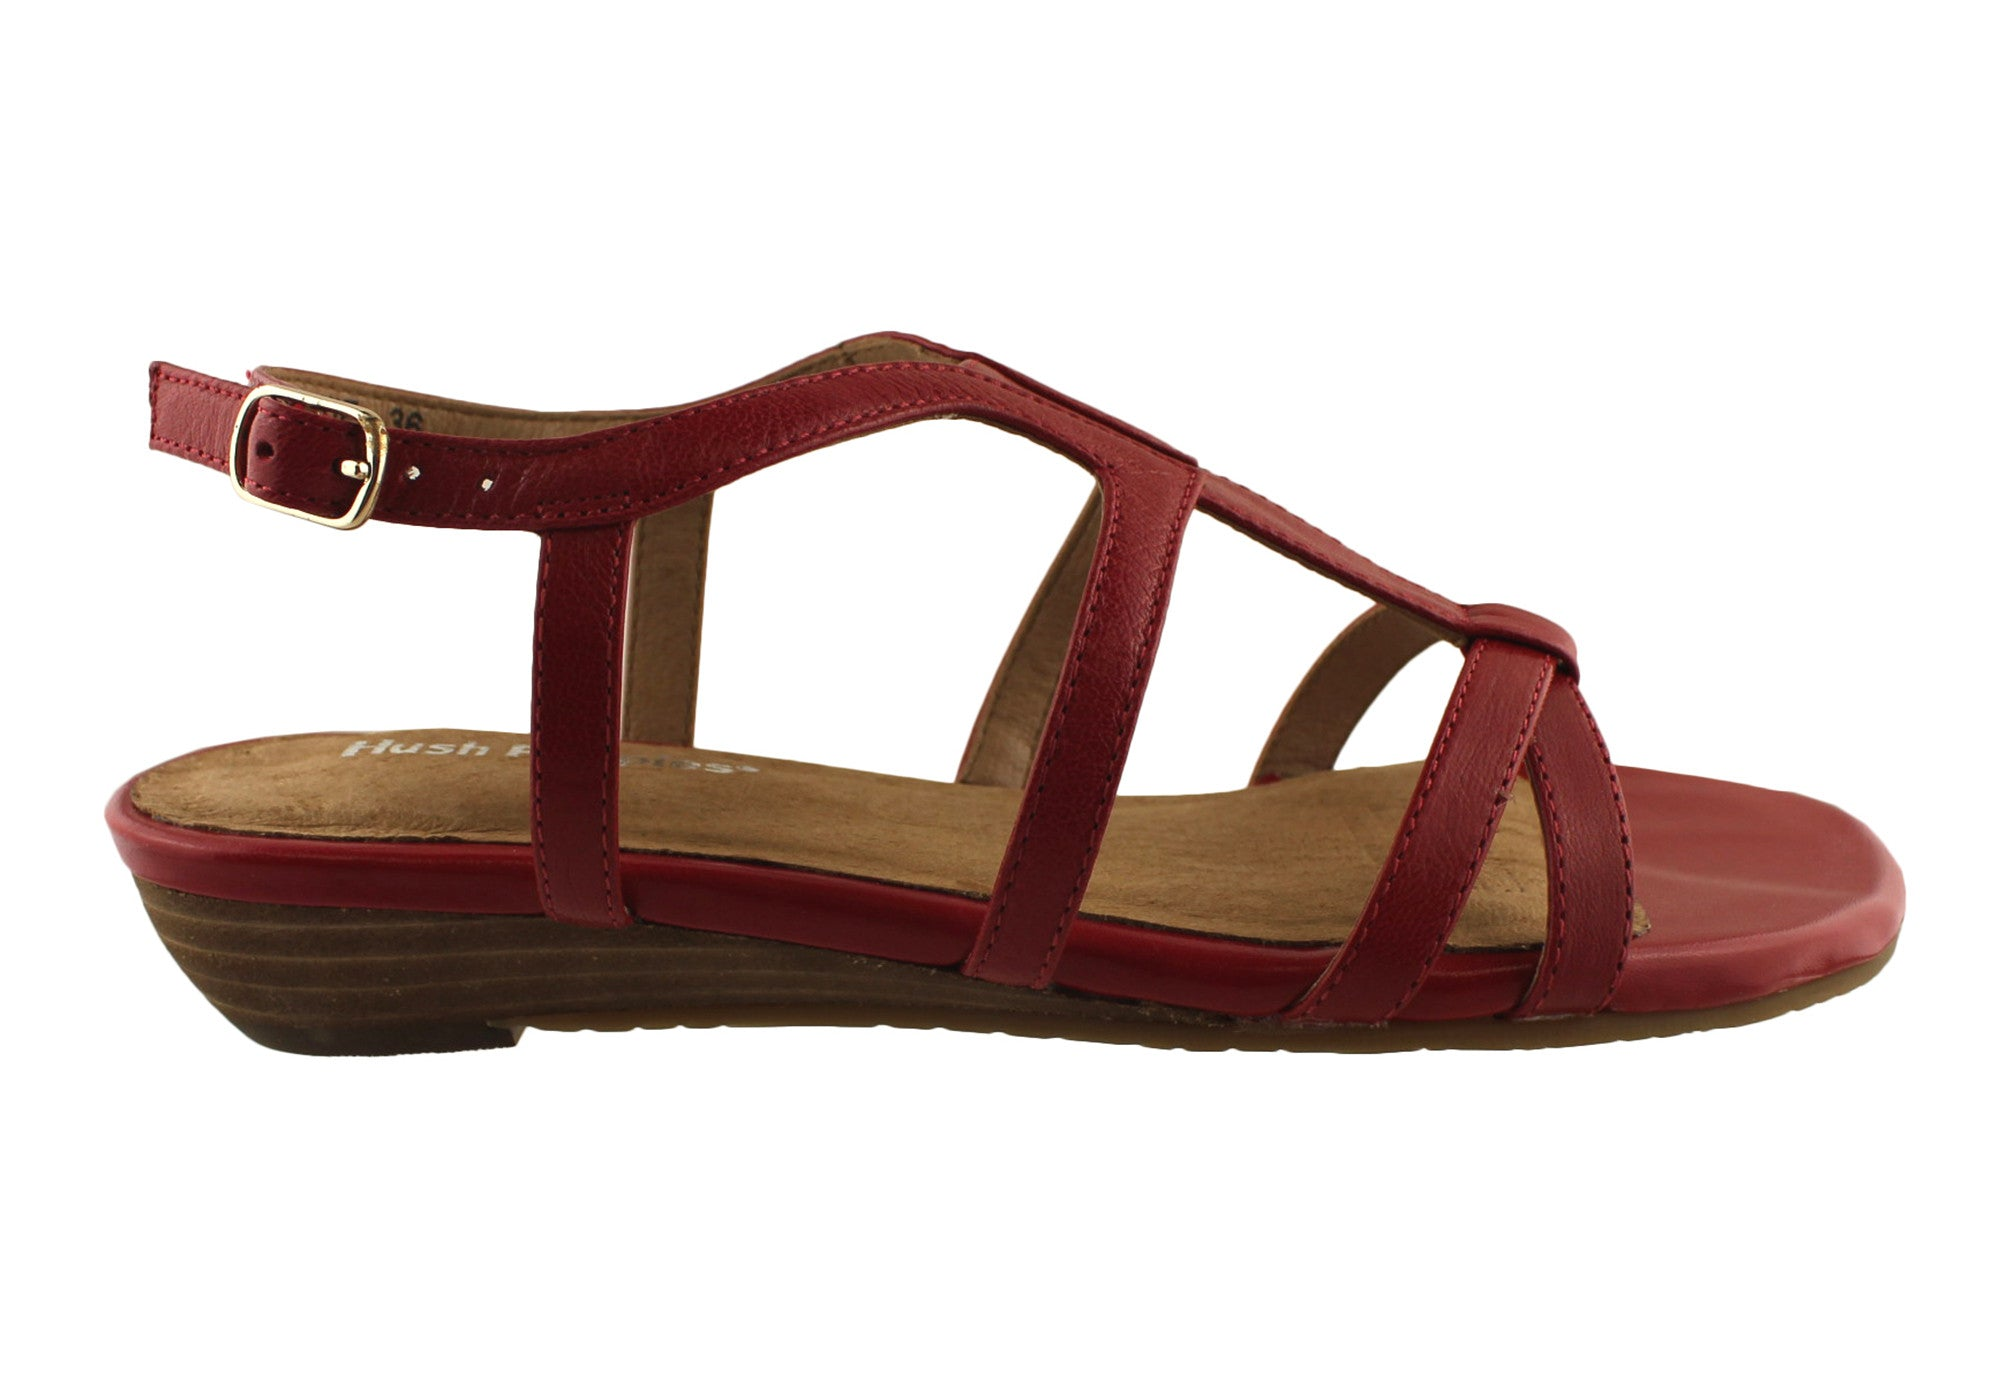 Hush Puppies Frankie Womens Leather Sandals